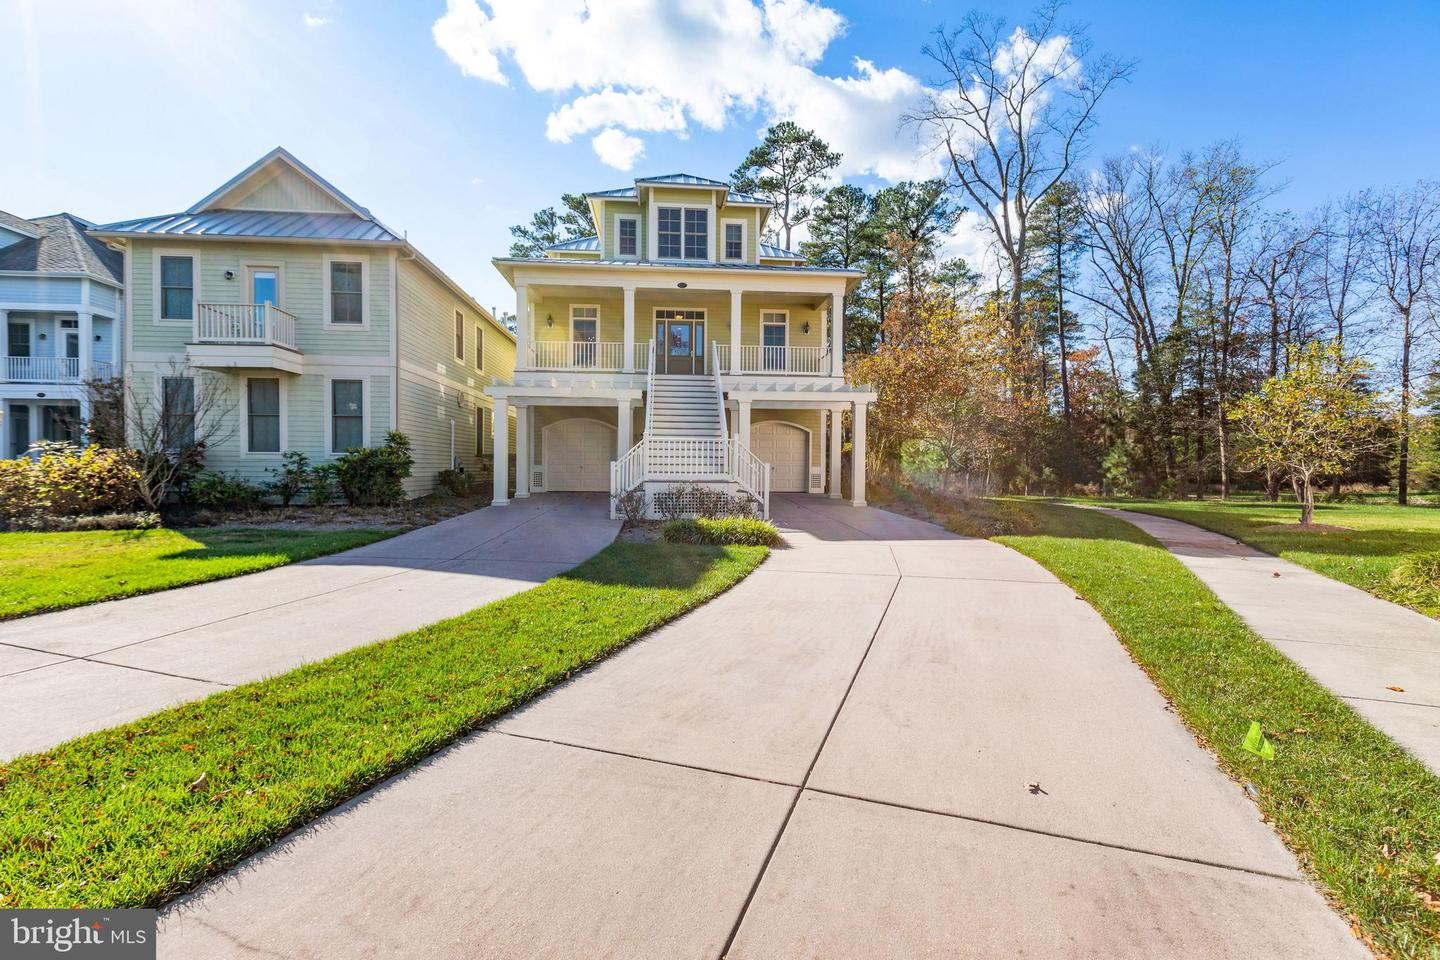 27474 S Nicklaus Ave   - Best of Northern Virginia Real Estate